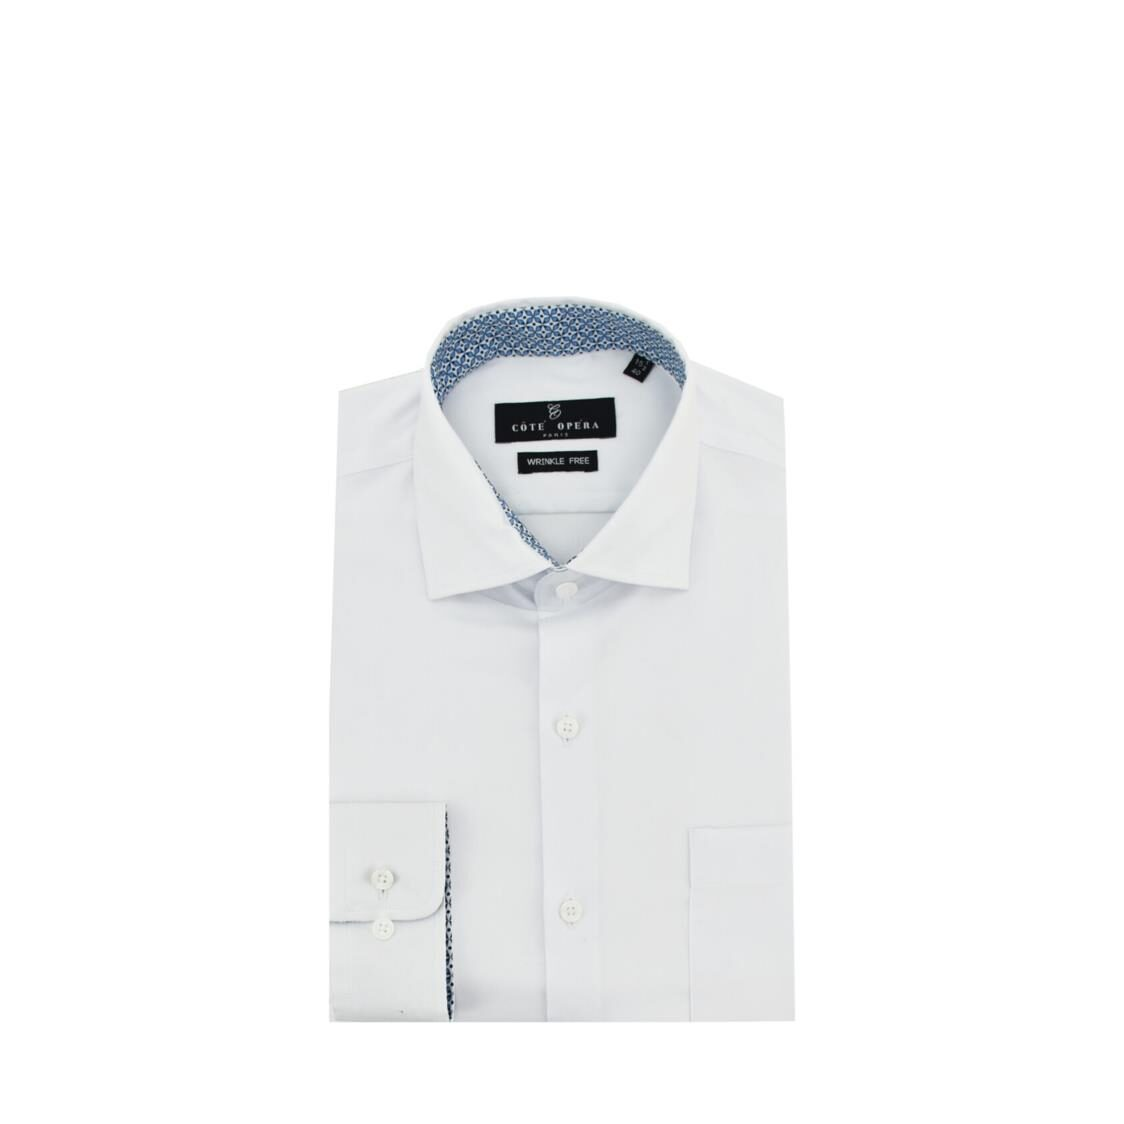 Cote Opera Long-Sleeved Shirt with Wrinkle-Free  Moist Cured finish - White